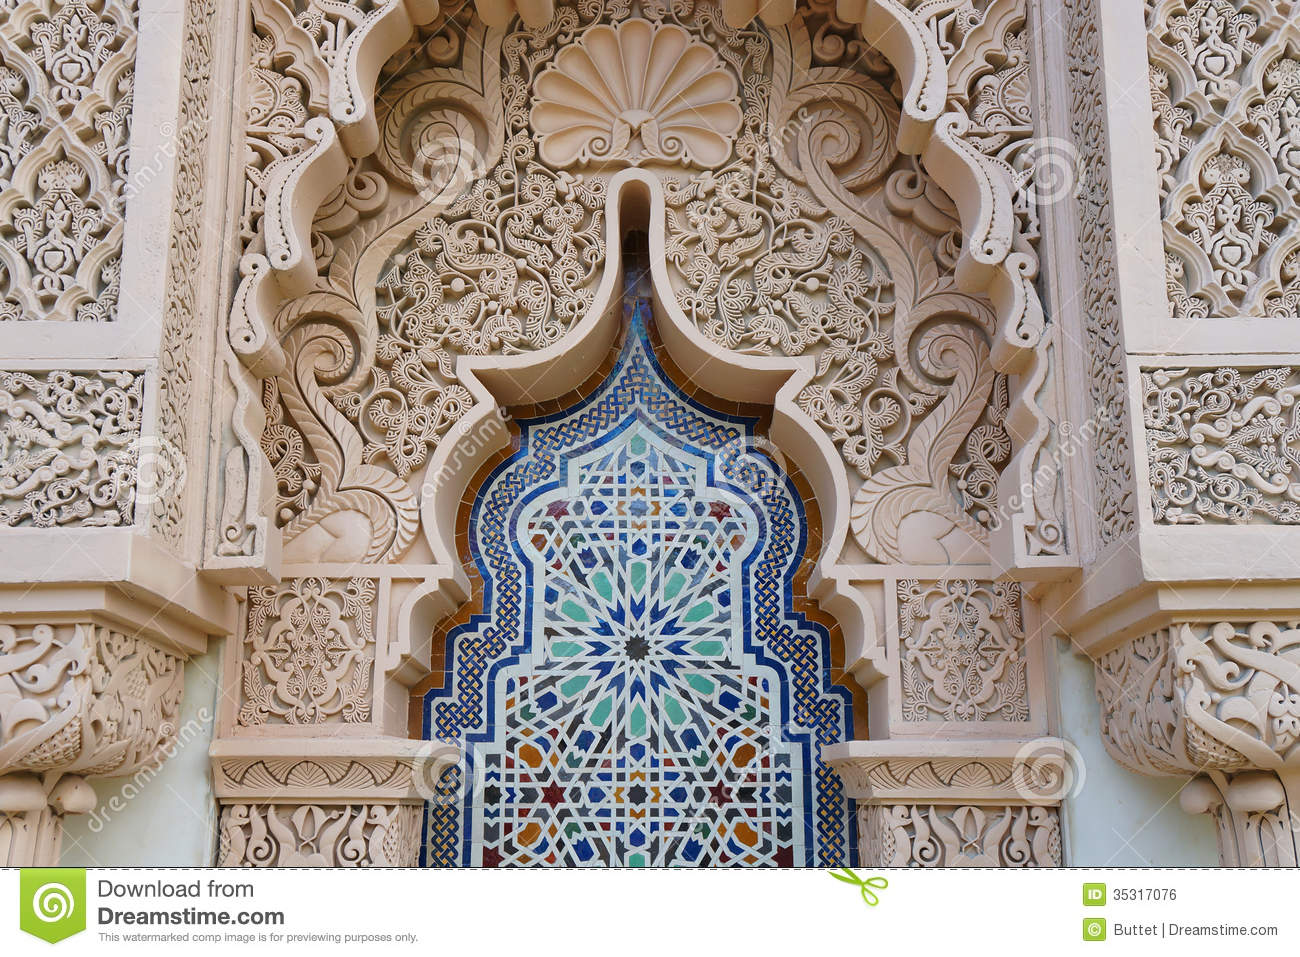 moroccan royalty free stock image - image: 35317076